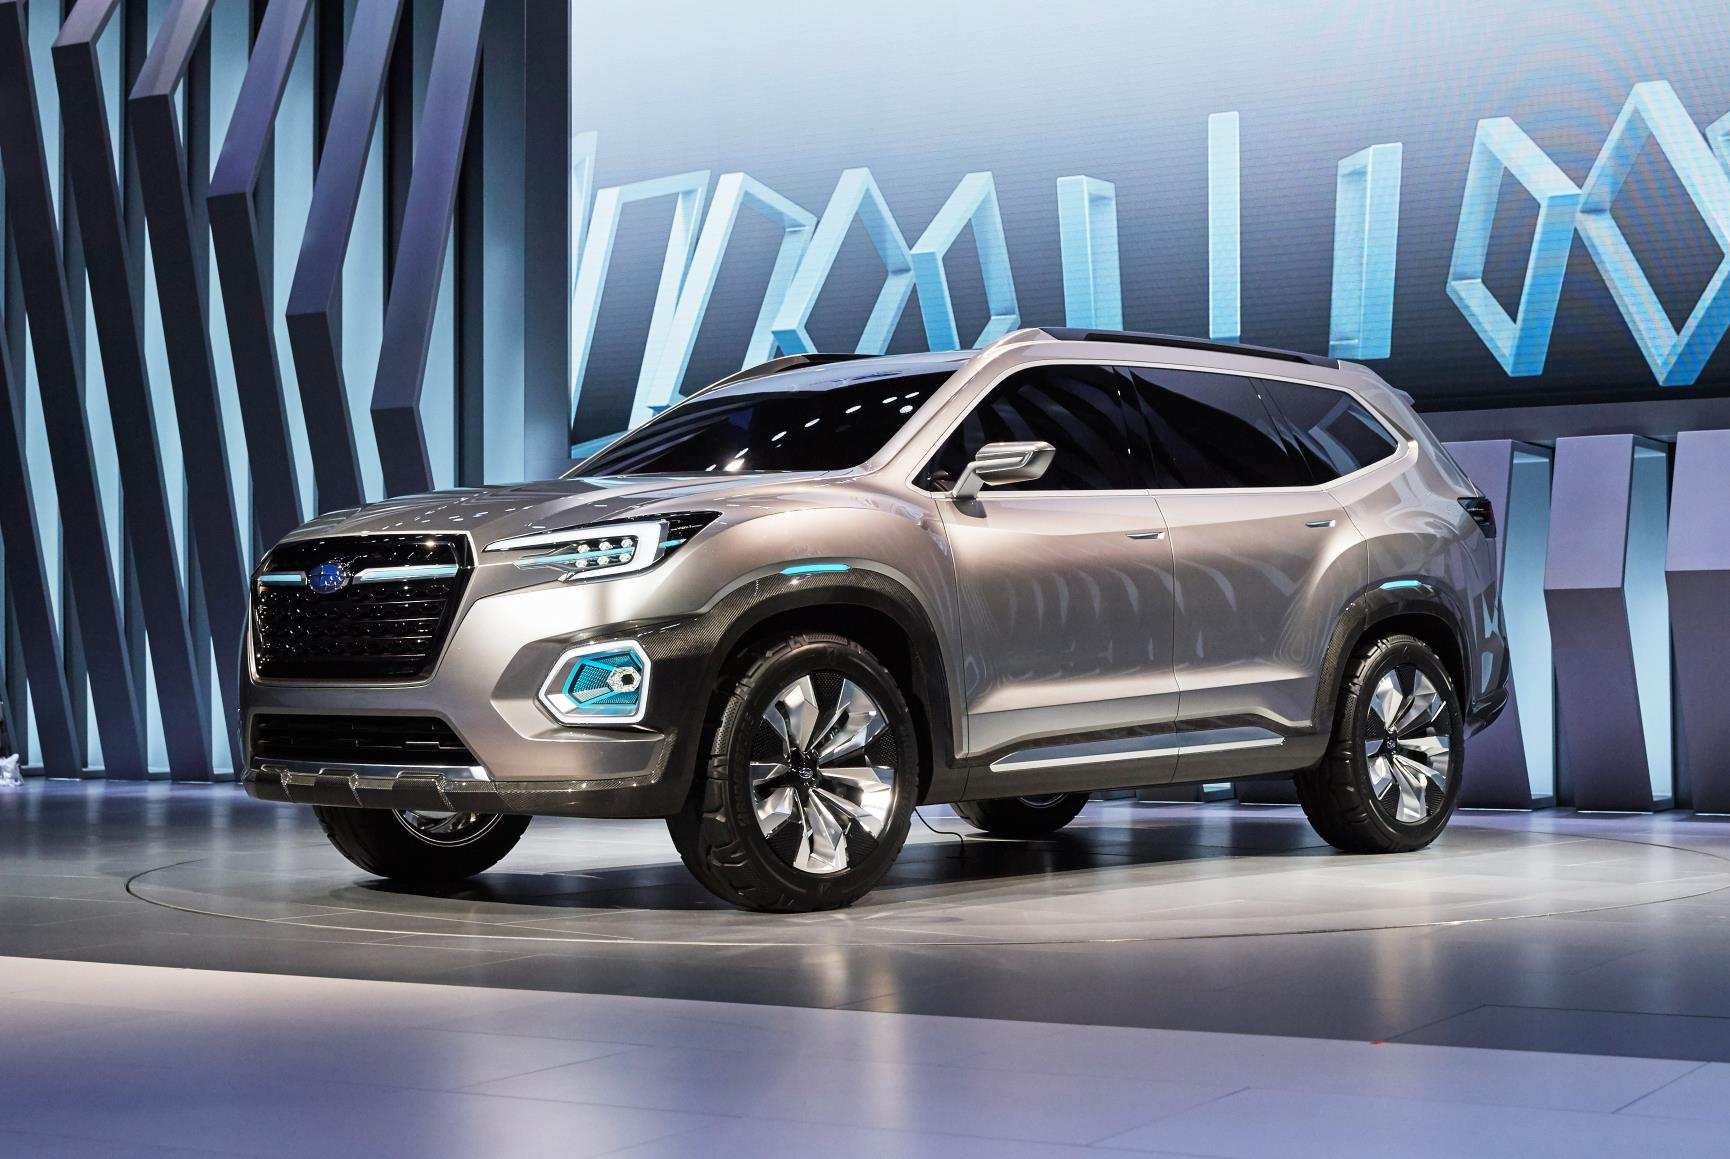 21 New Subaru Plans For 2019 Concept Redesign And Review Spy Shoot with Subaru Plans For 2019 Concept Redesign And Review